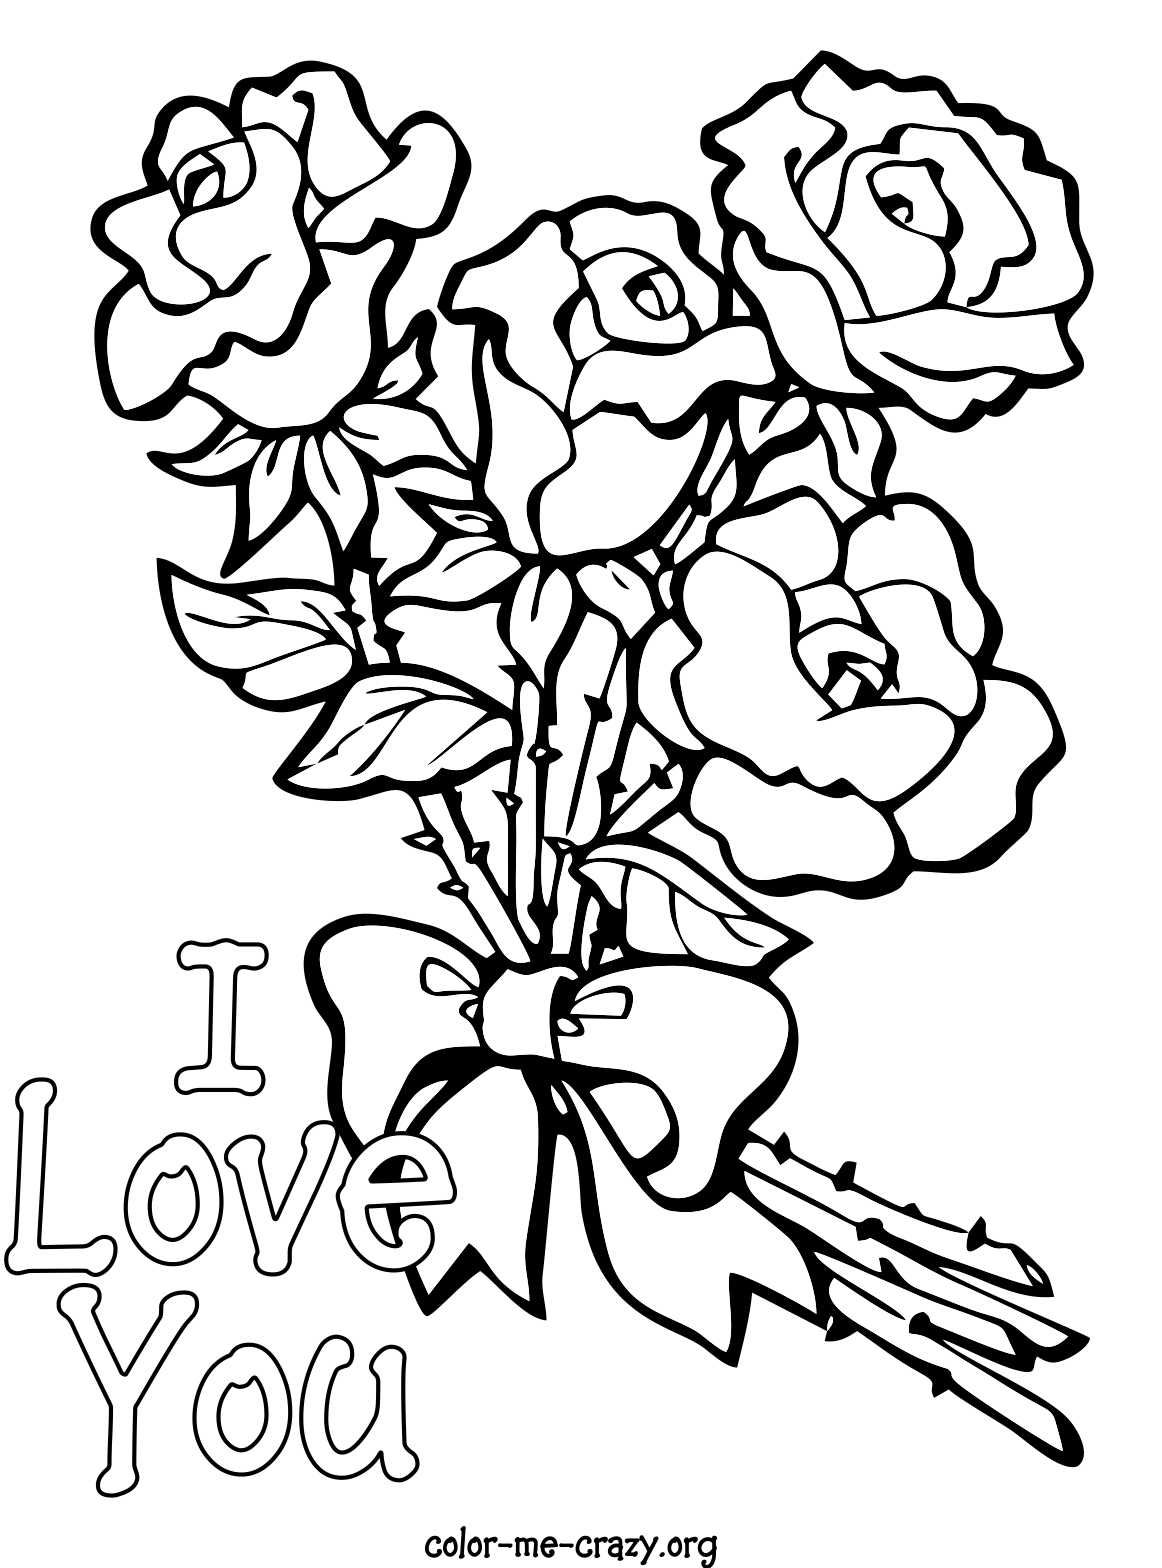 Printable coloring pages love - I Love You Boyfriend Coloring Pages Google Search